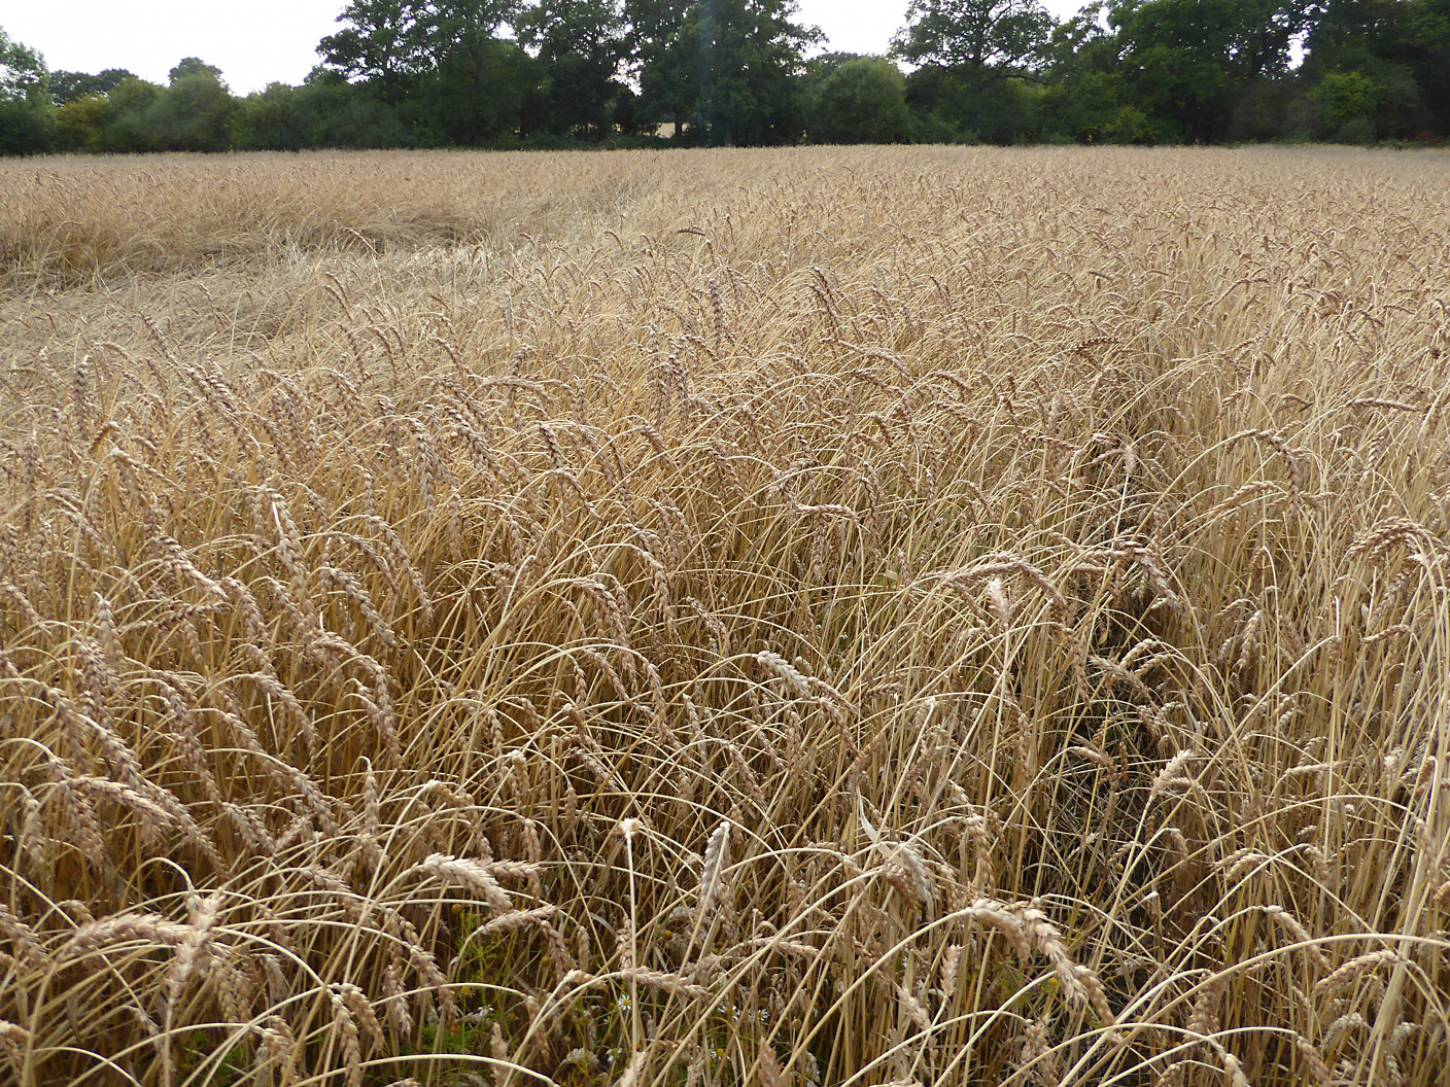 Red Lammas, farm review pre-harvest '17 - 6:29pm&nbsp;1<sup>st</sup>&nbsp;Aug.&nbsp;'17  <a href='http://maps.google.com/?t=h&q=51.209228,-0.085994&z=18&output=embed' target=_blank><img src='http://www.brockwell-bake.org.uk/img/marker.png' style='border:none;vertical-align:top' height=16px></a>